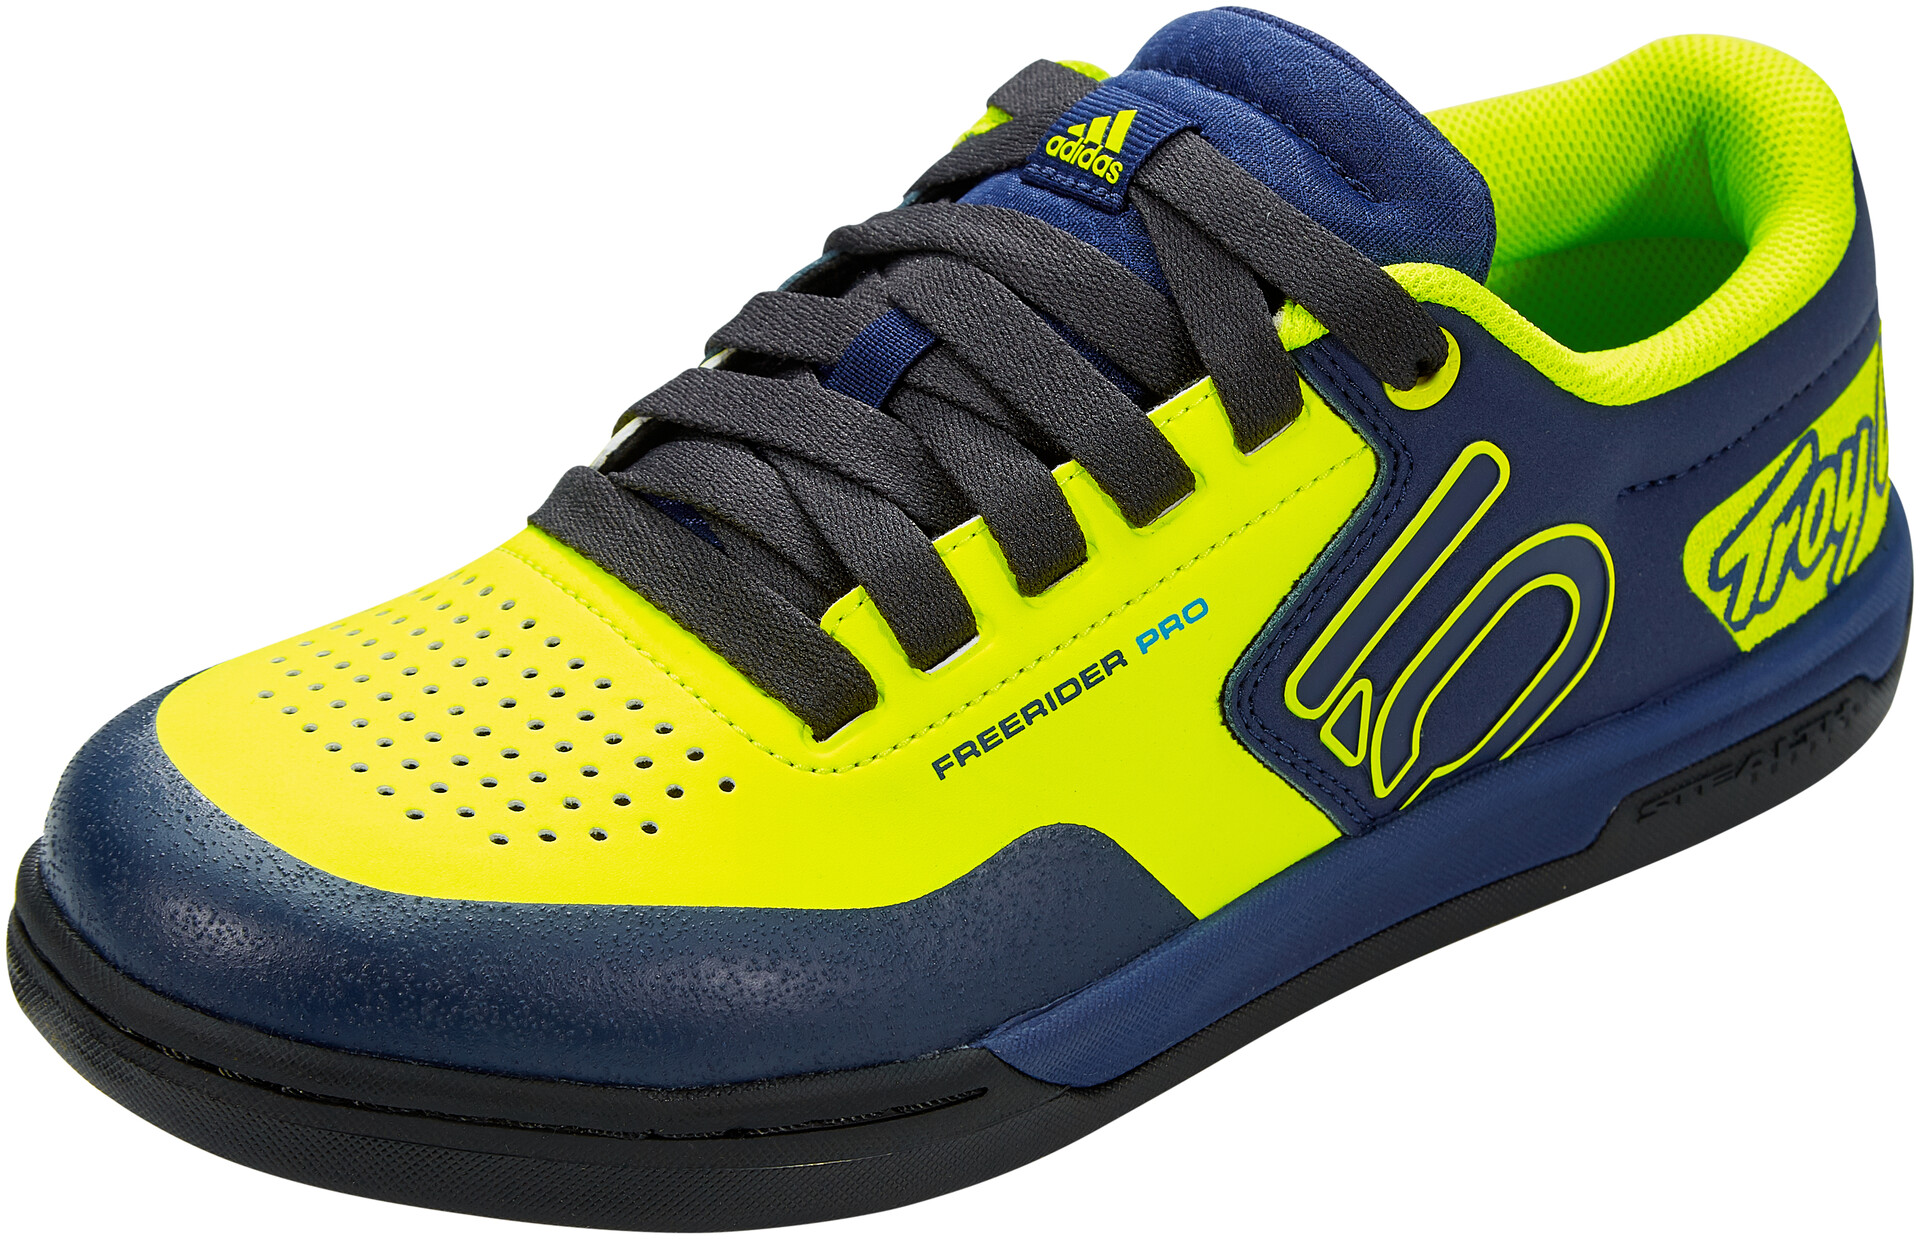 adidas Five Ten Freerider Pro TLD Low Cut Shoes Men solar yellowsolar yellowcarbon